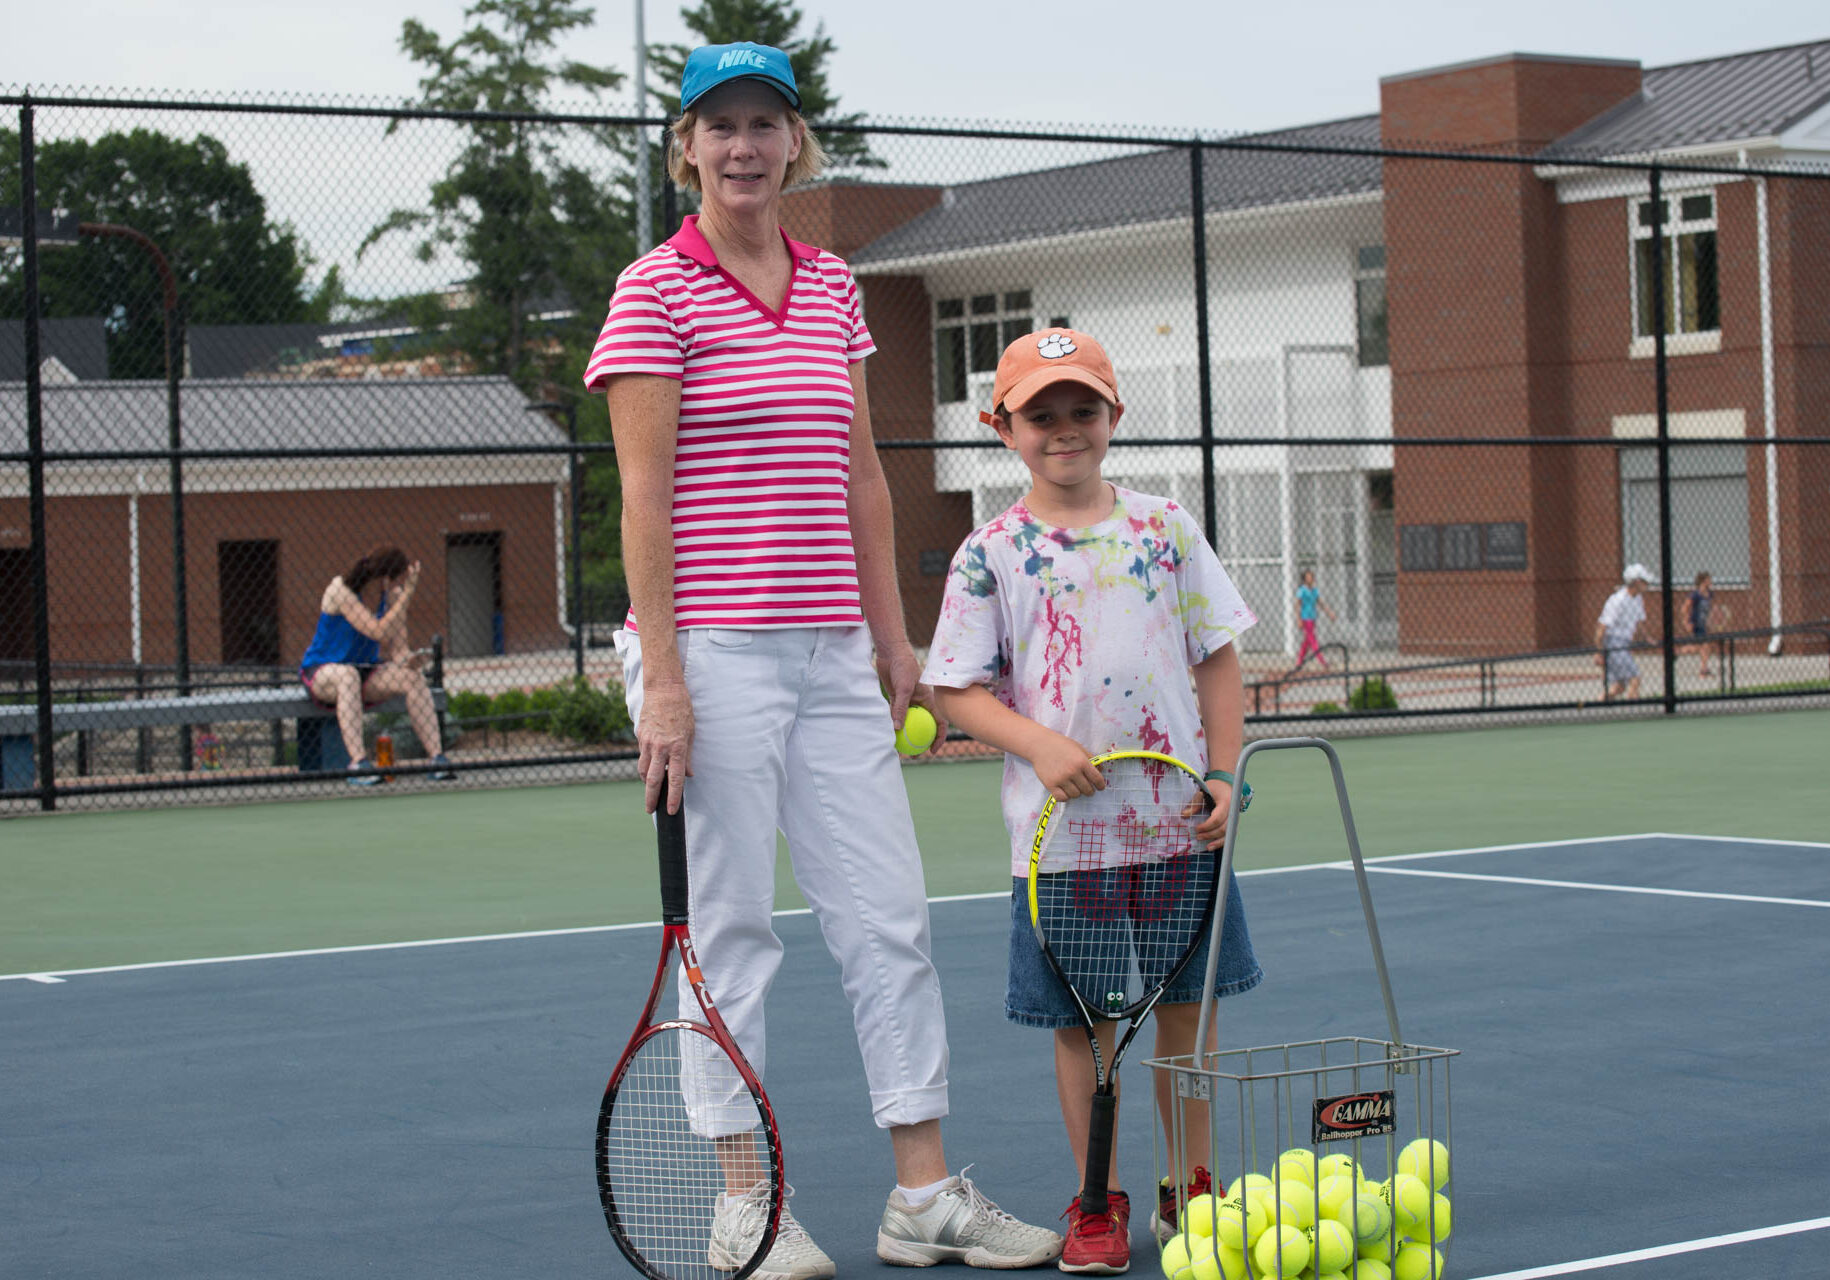 Board member Susan Amonette with a student during the Youth Tennis Clinic